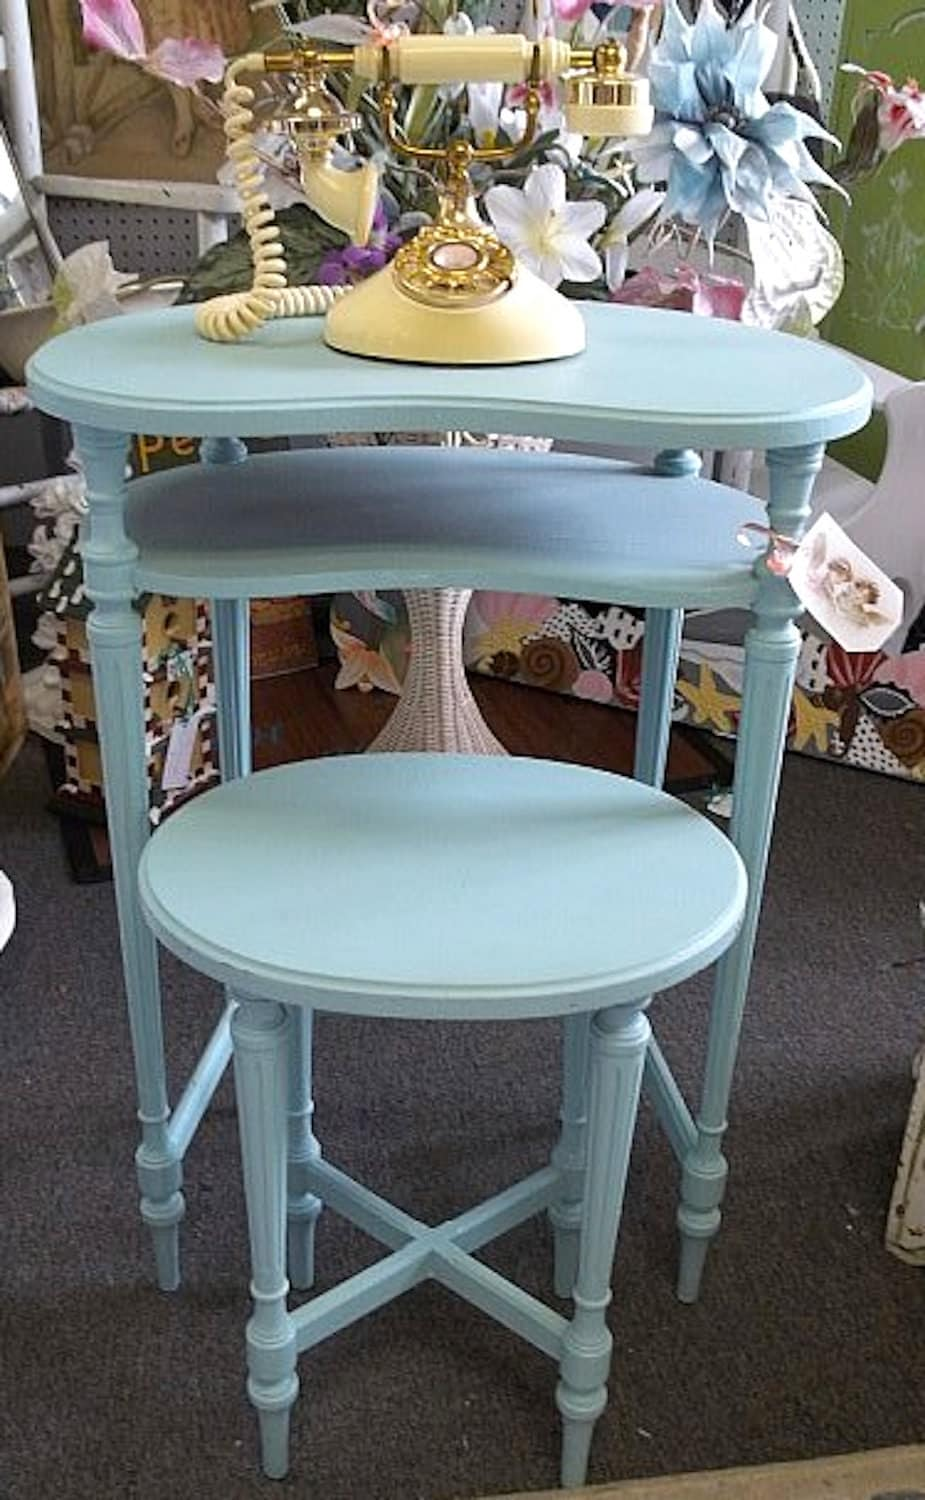 Darling Antique Telephone Table & Chair By